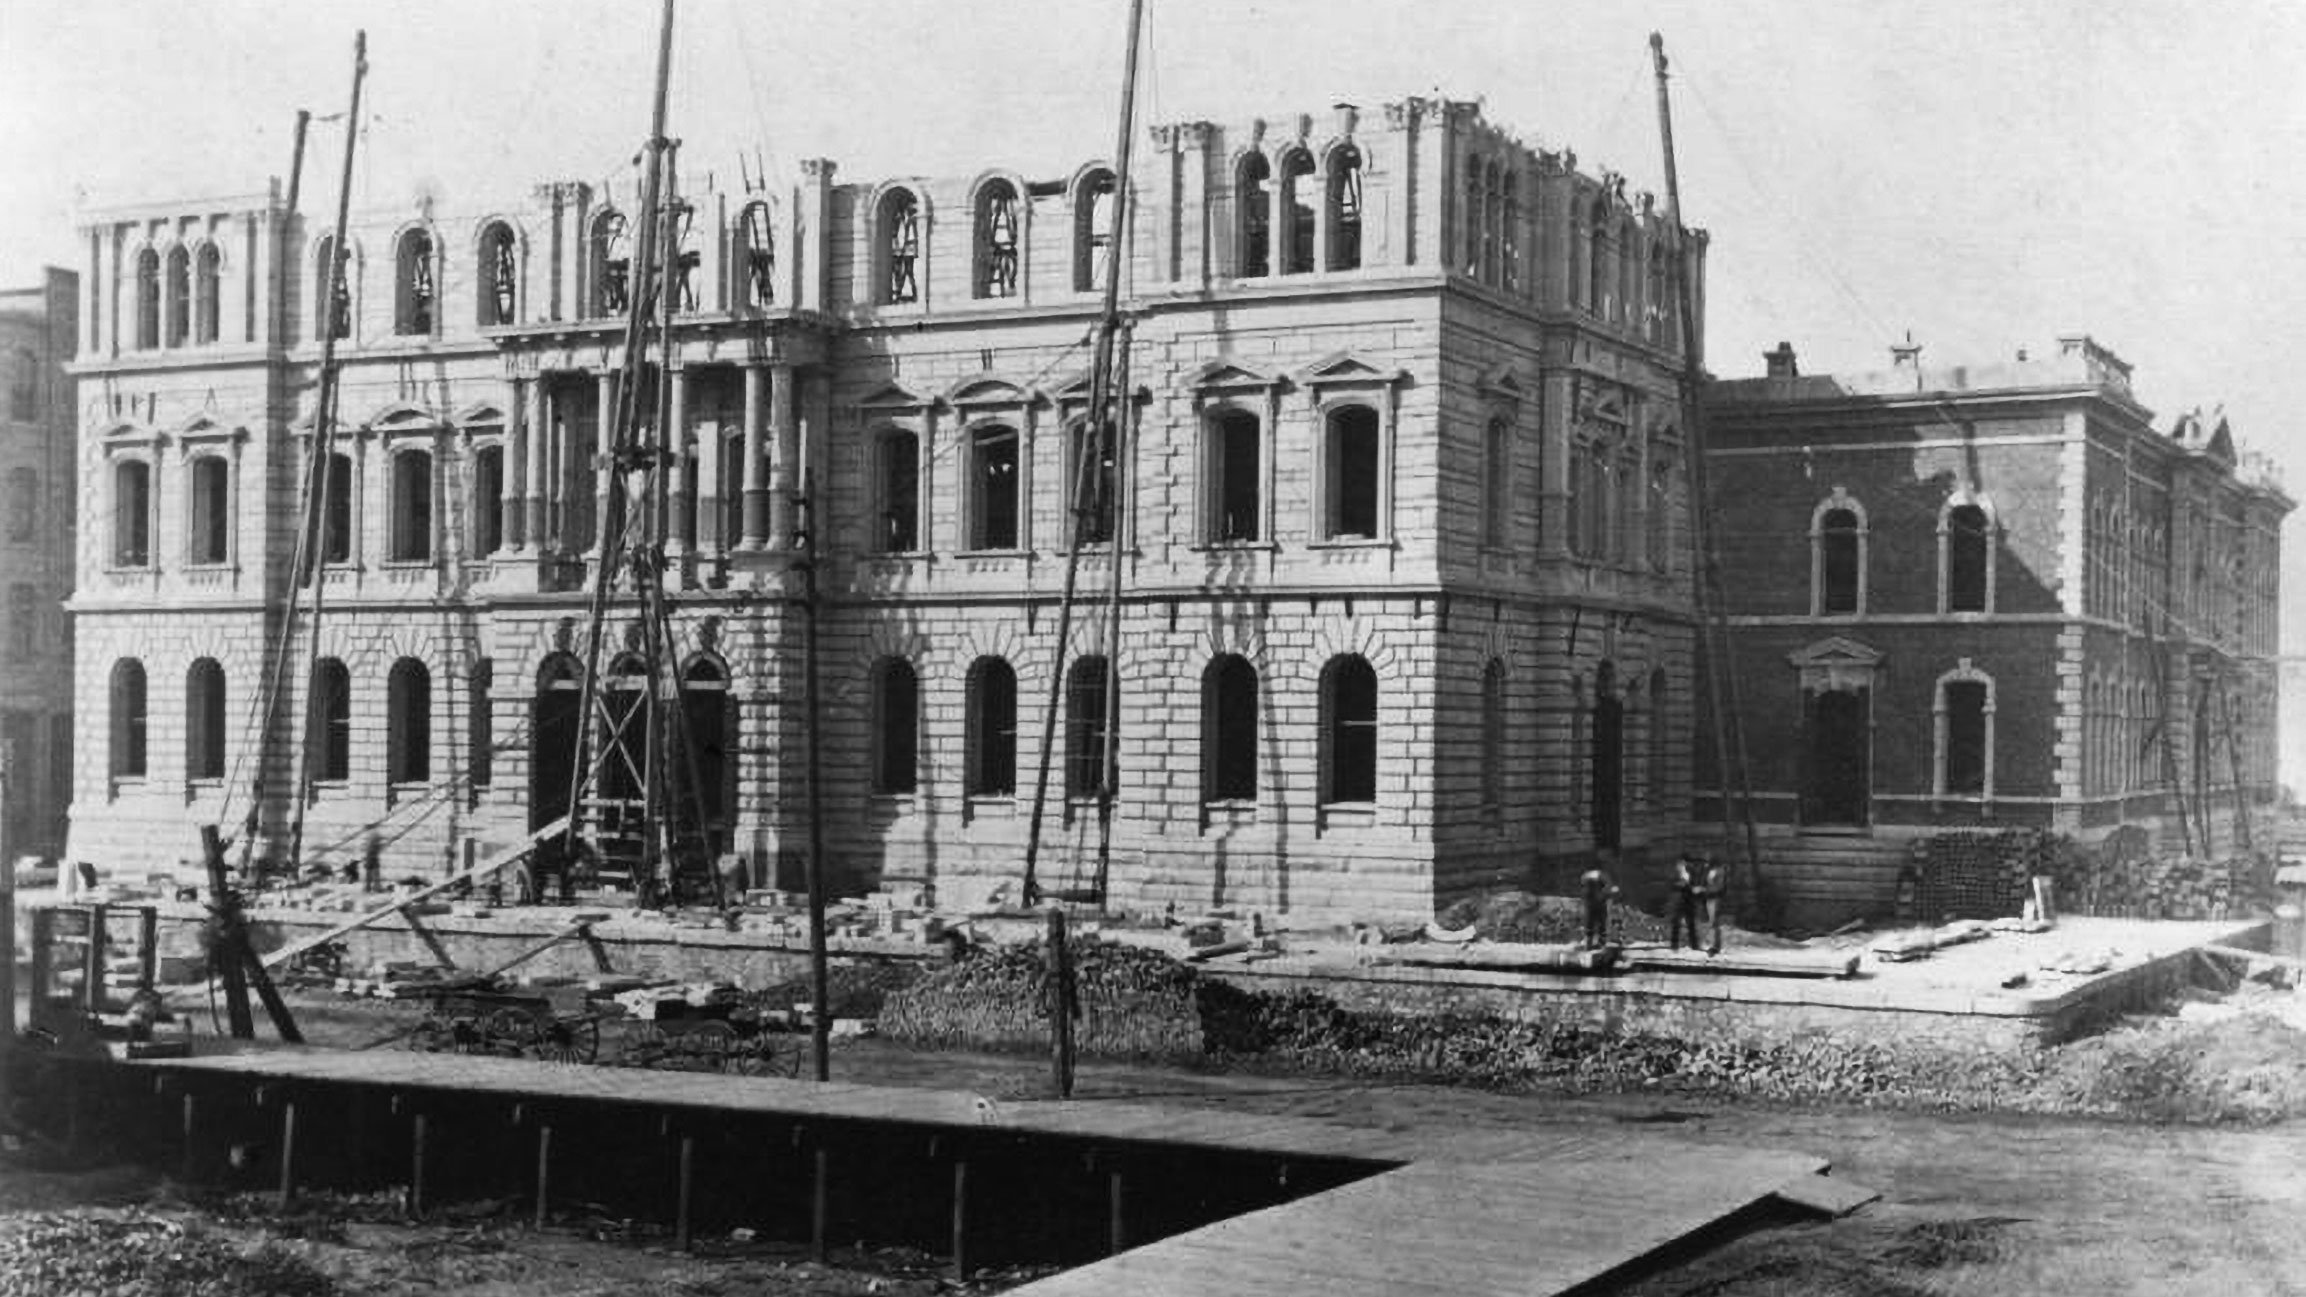 Construction of new Chicago courthouse and jail after the Great Chicago Fire